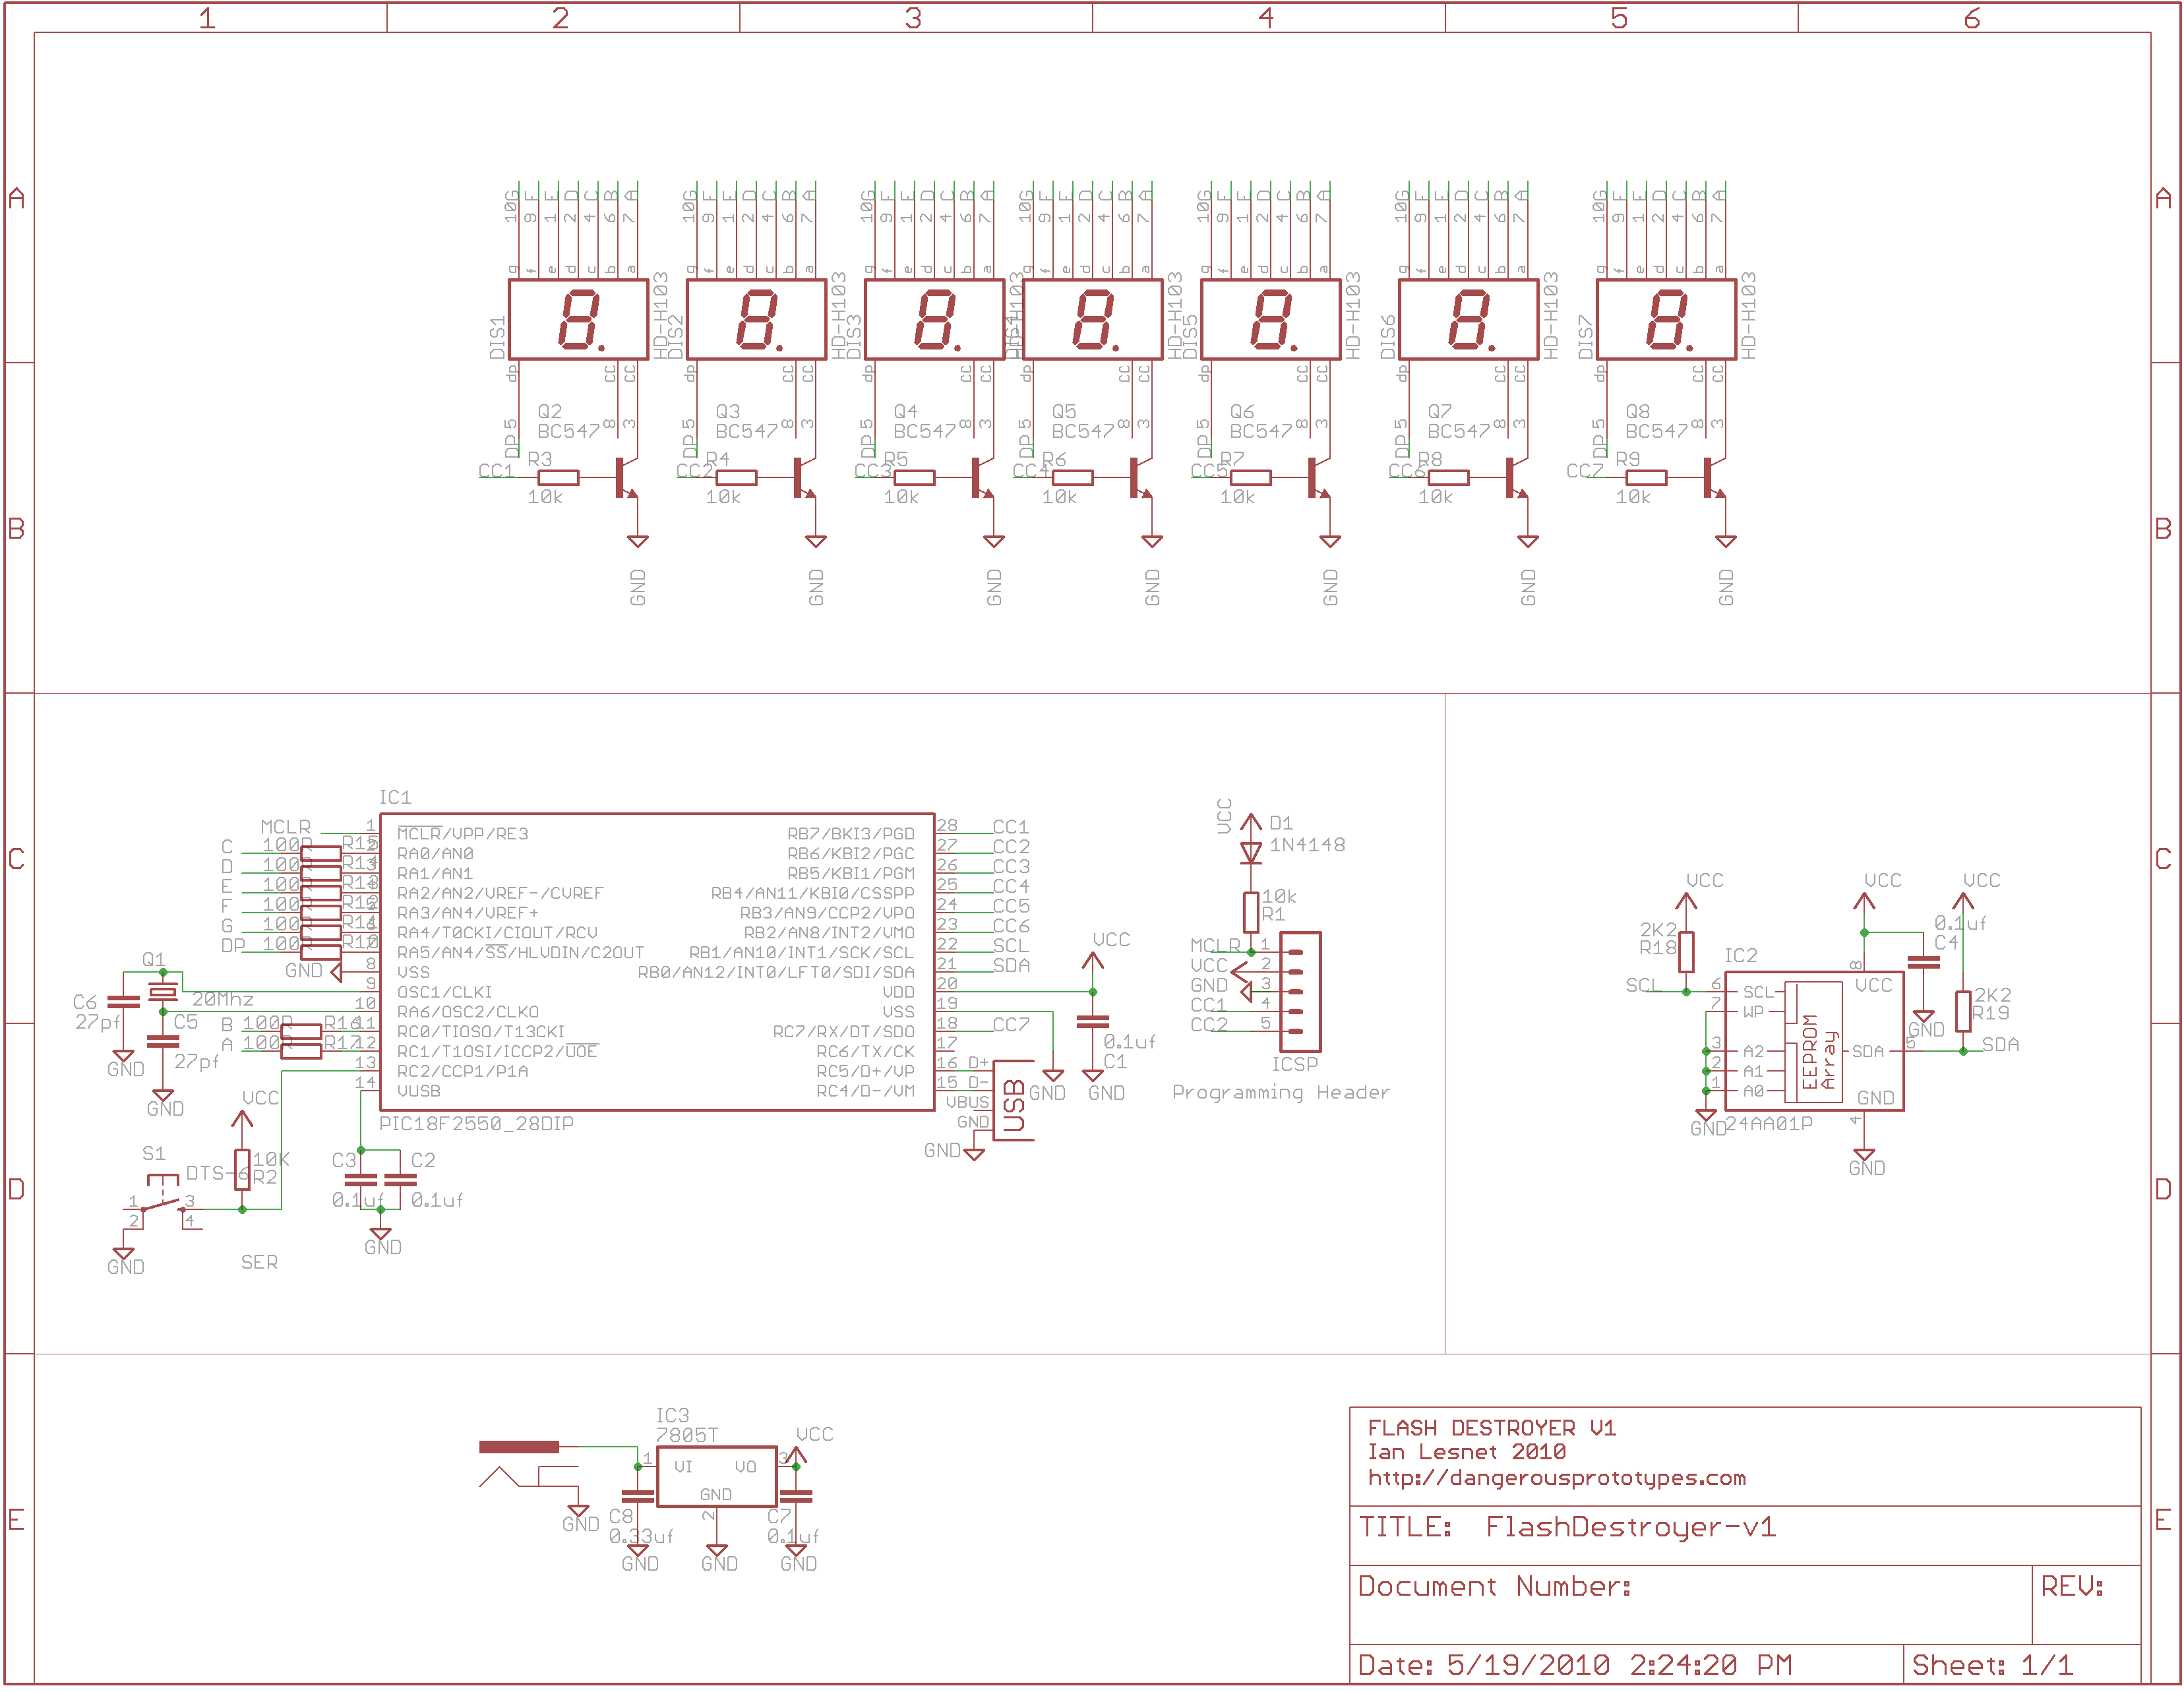 Prototype Flash Destroyer Dangerous Prototypes Free Download Wiring Diagram Click For A Large Image Of The Schematic We Used Freeware